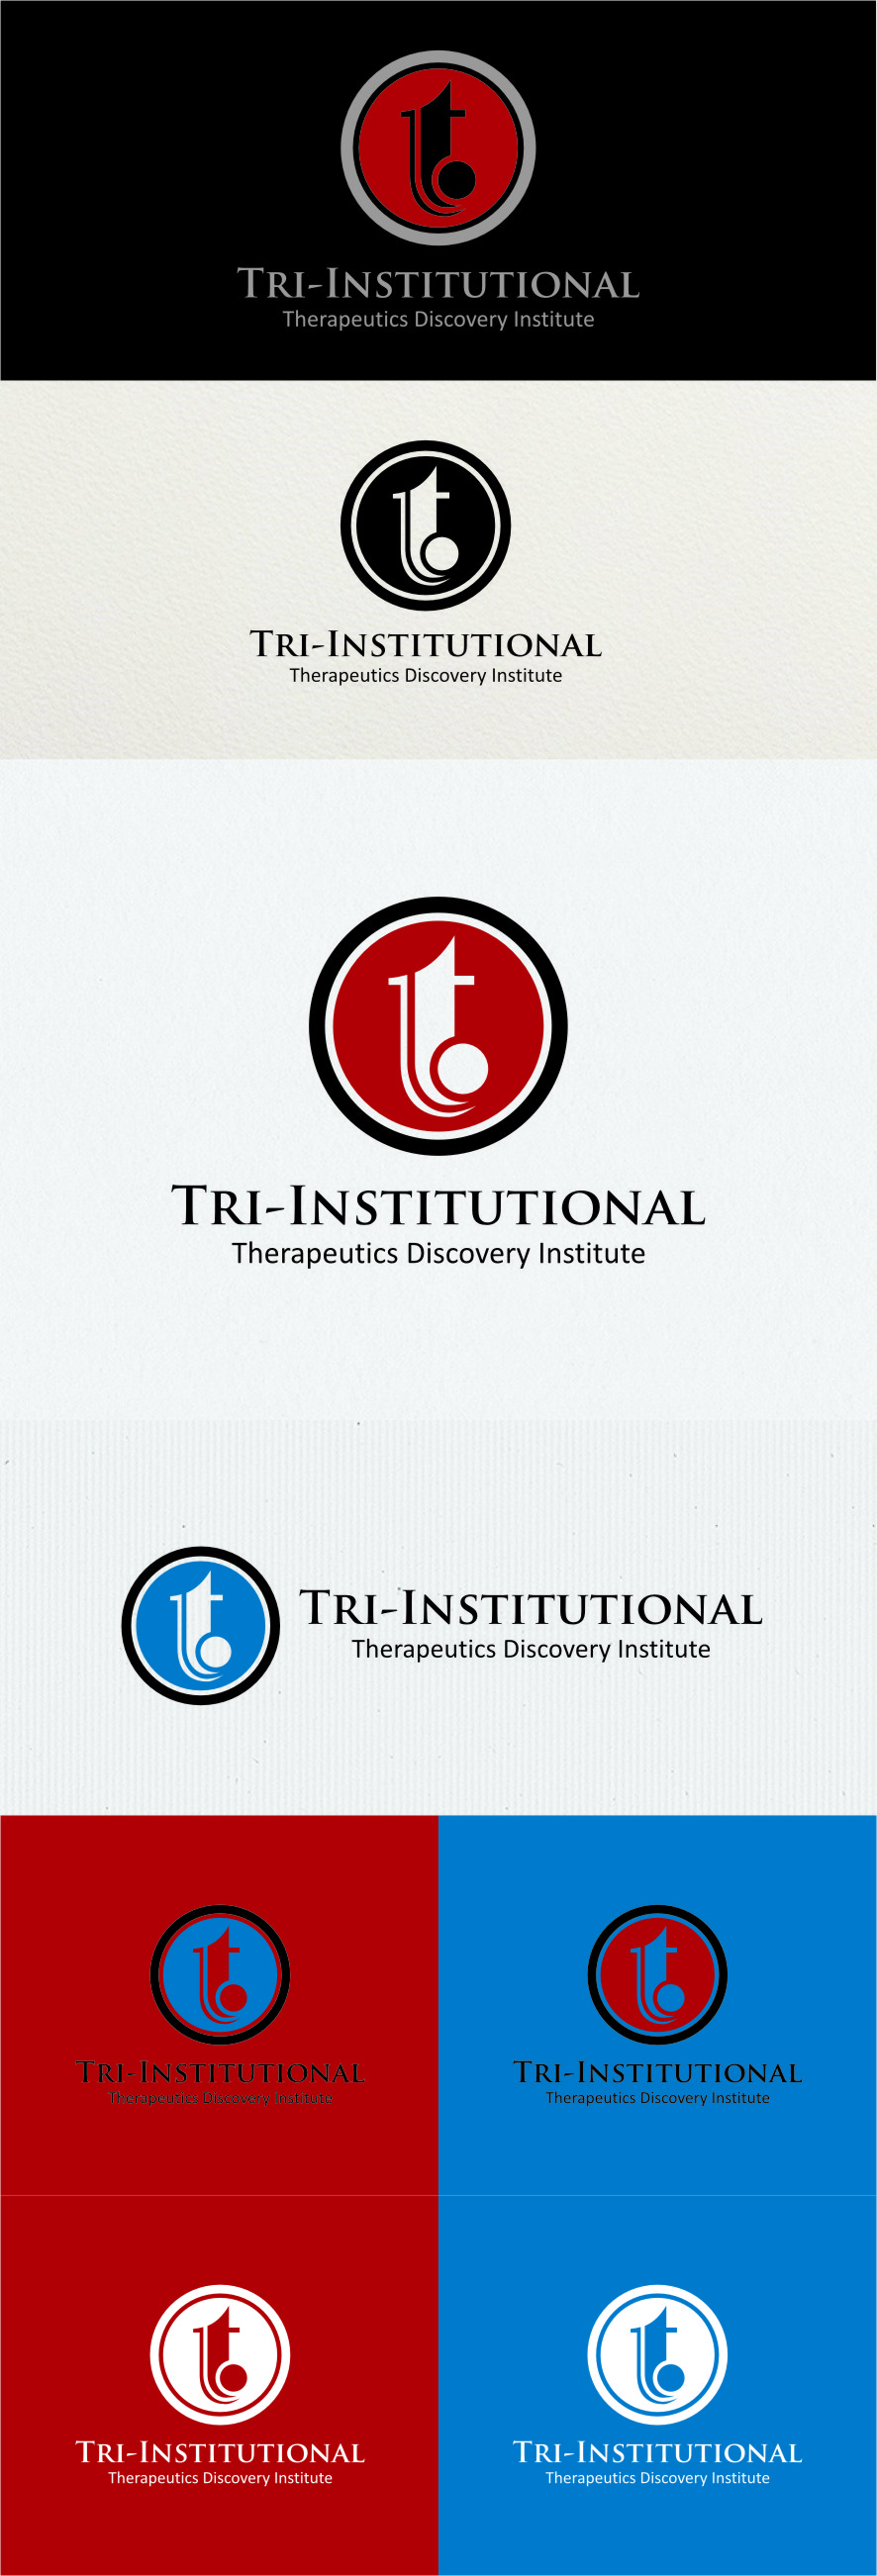 Logo Design by Ngepet_art - Entry No. 89 in the Logo Design Contest Inspiring Logo Design for Tri-Institutional Therapeutics Discovery Institute.